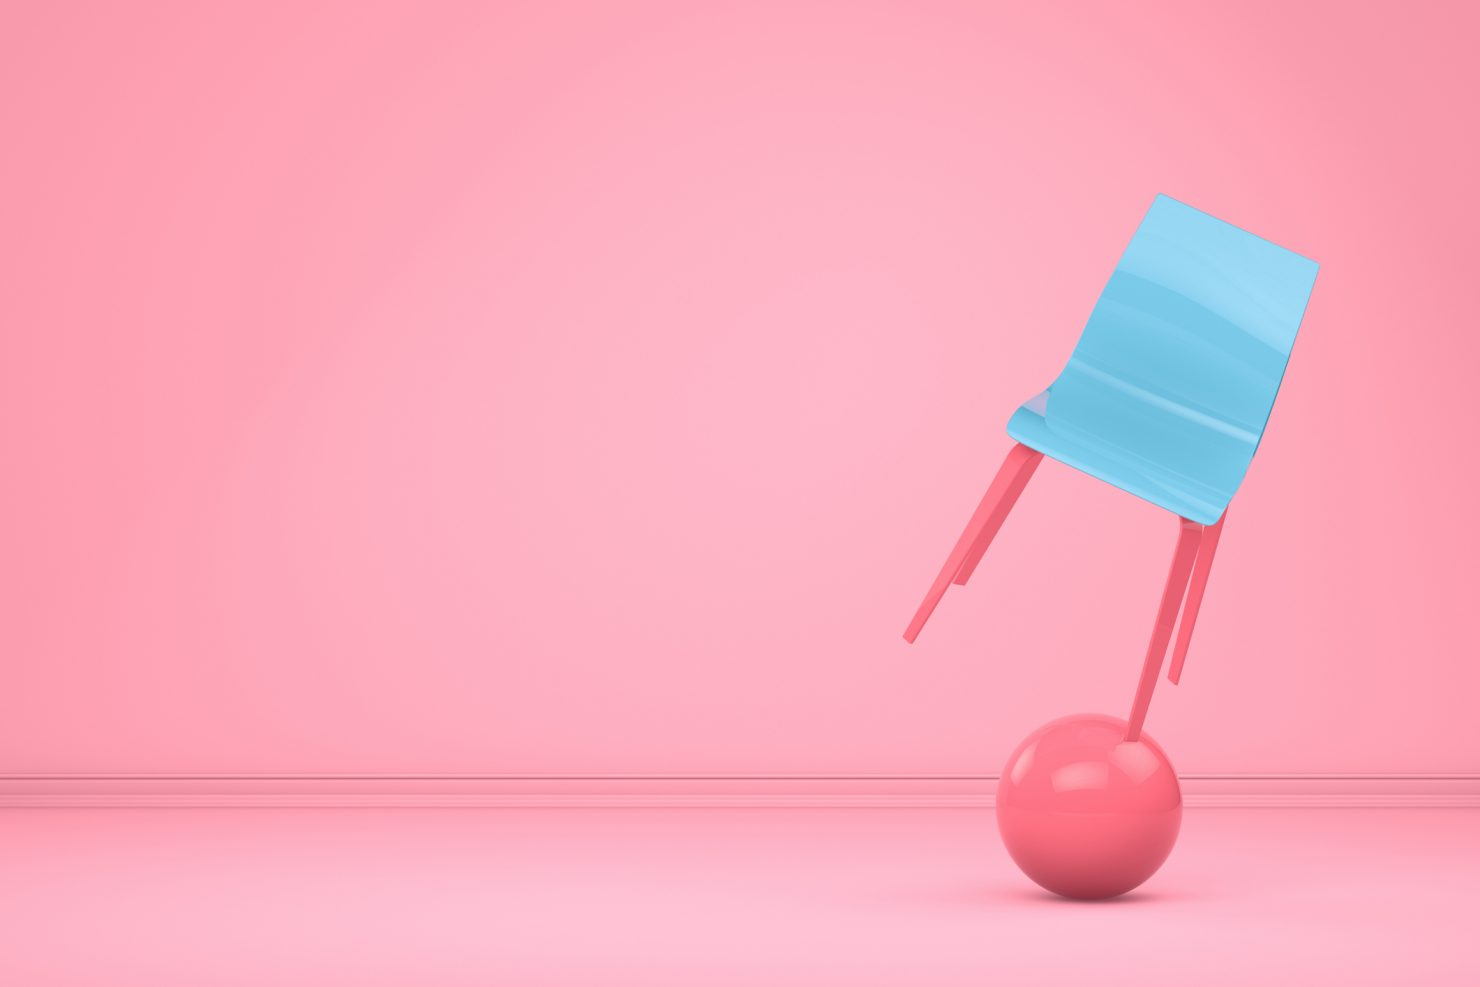 Picture of a blue and pink chair being balanced on top of an exercise ball to represent work-life balance.